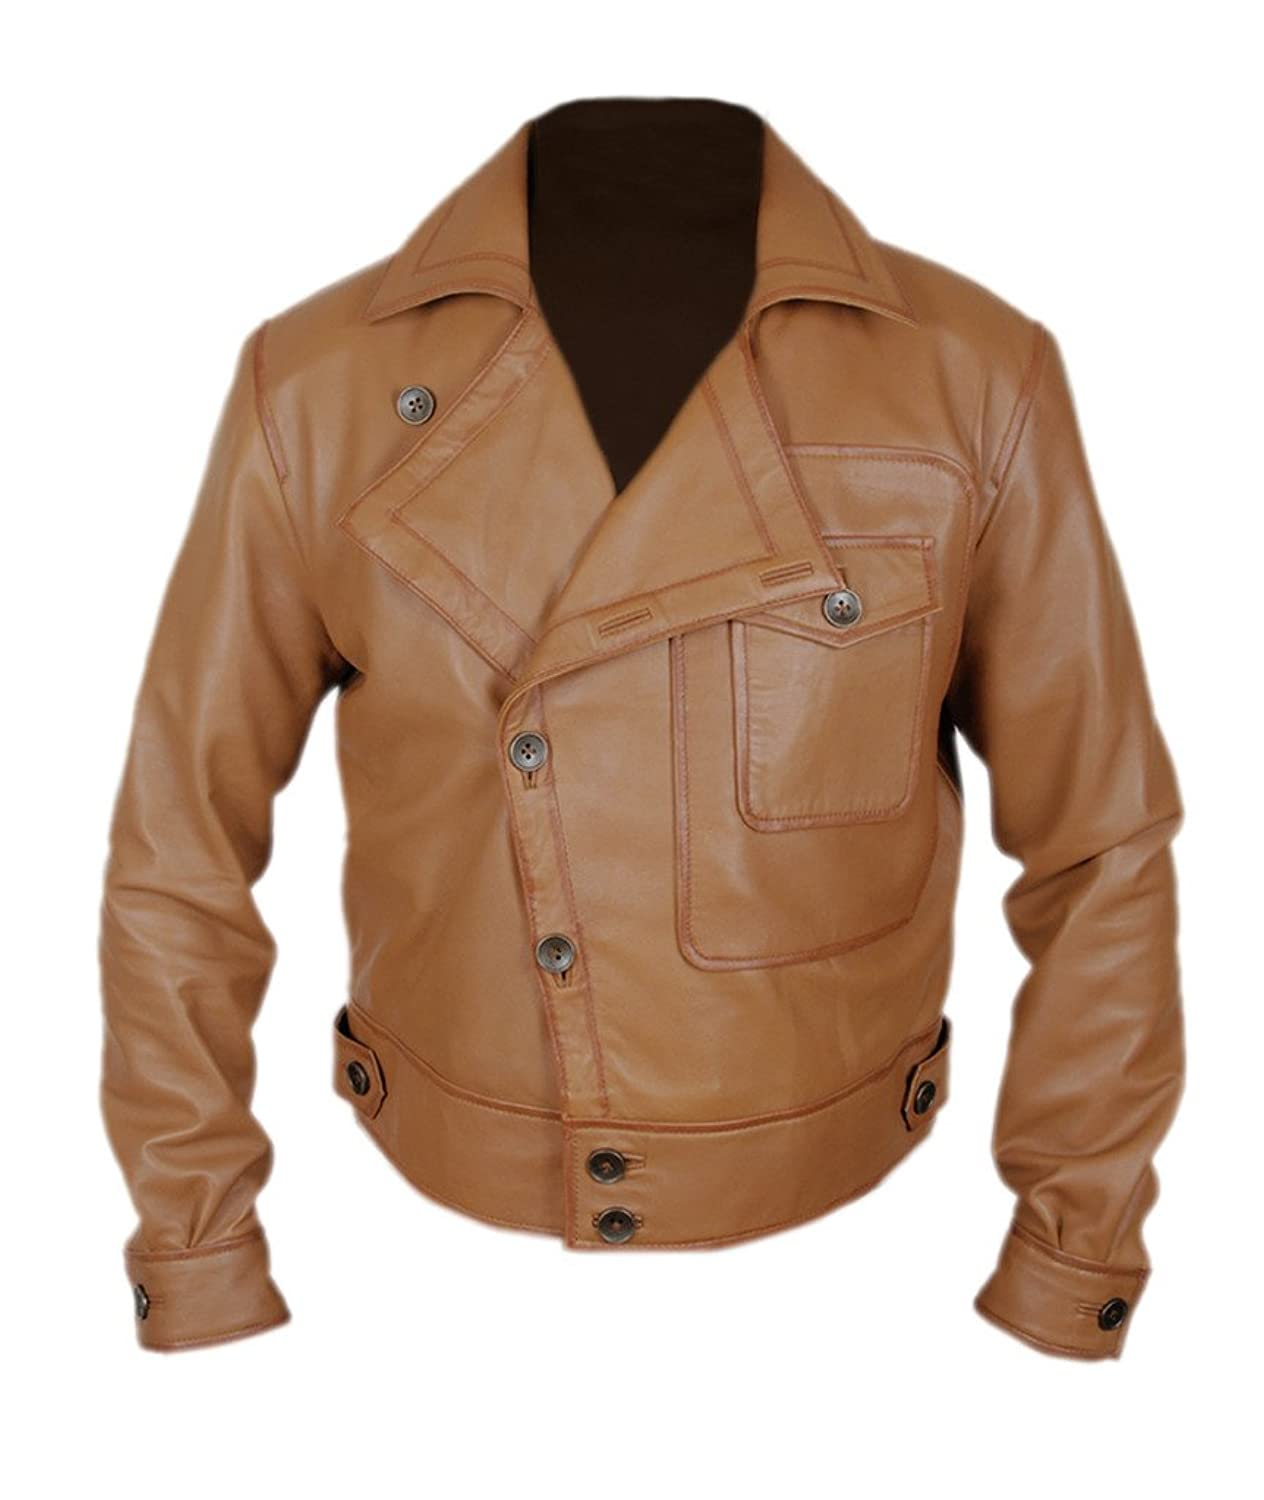 F&H Men's Leonardo DiCaprio Aviator Flight Jacket